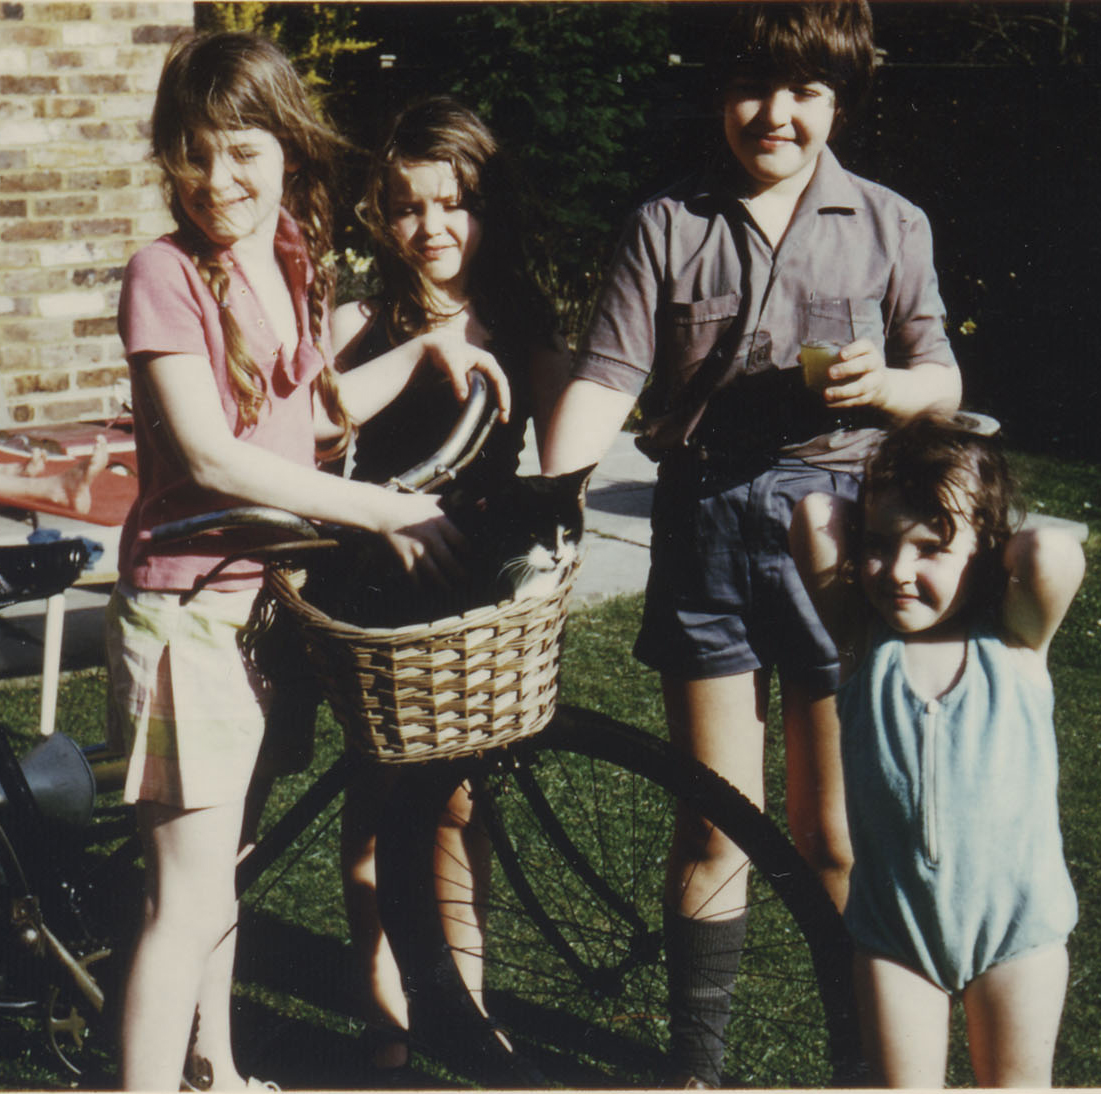 Here is my cat C1973. In a basket. I'm the one holding the bicycle